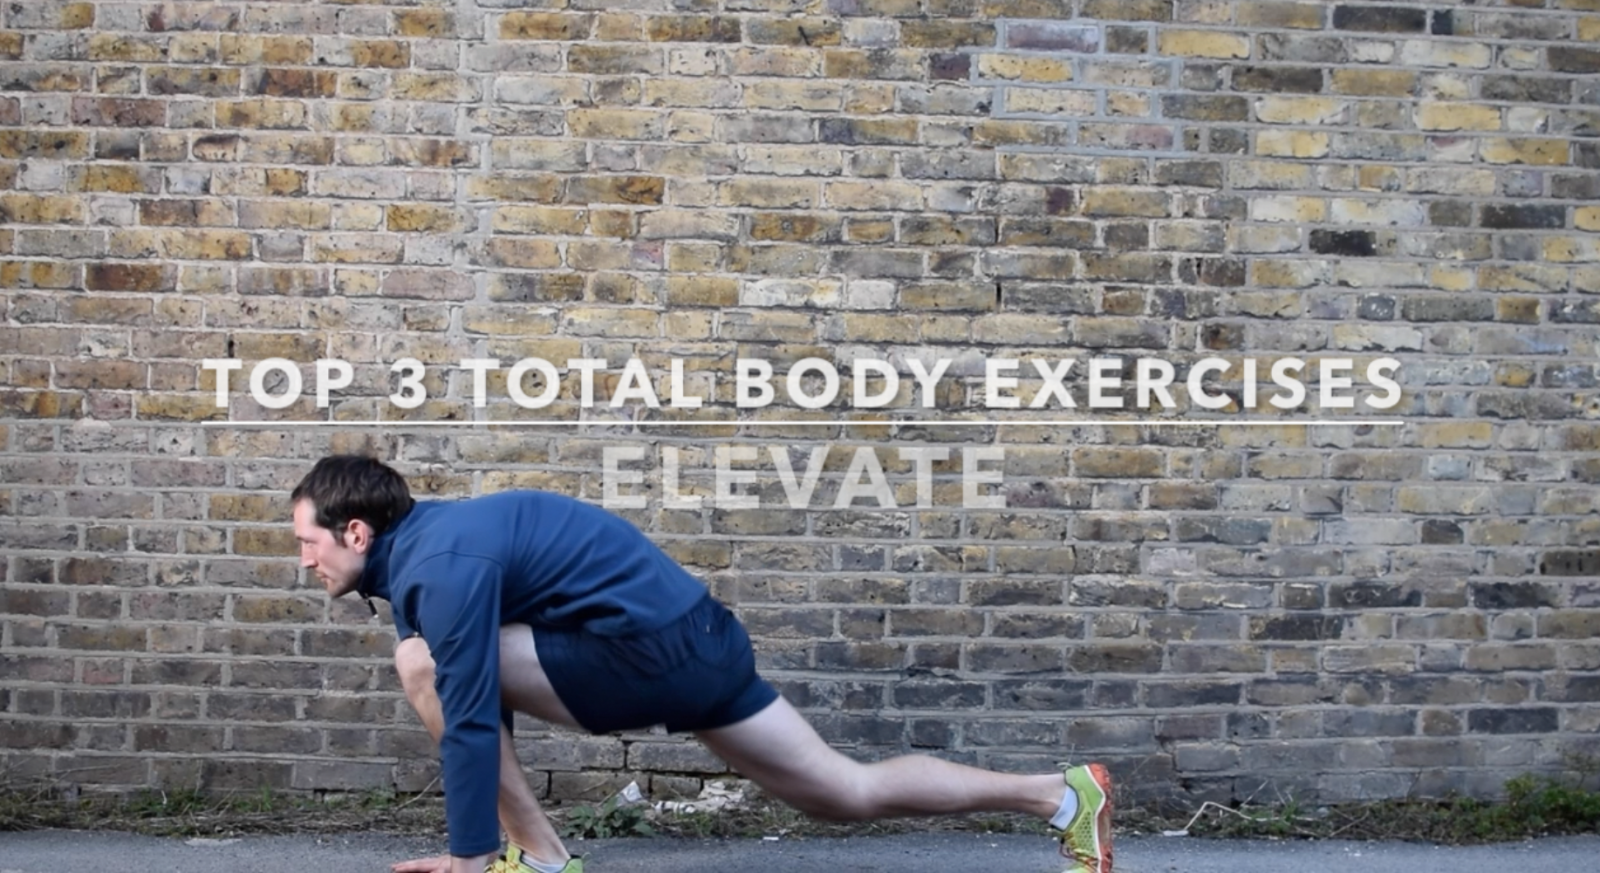 Top 3 Total Body Exercises